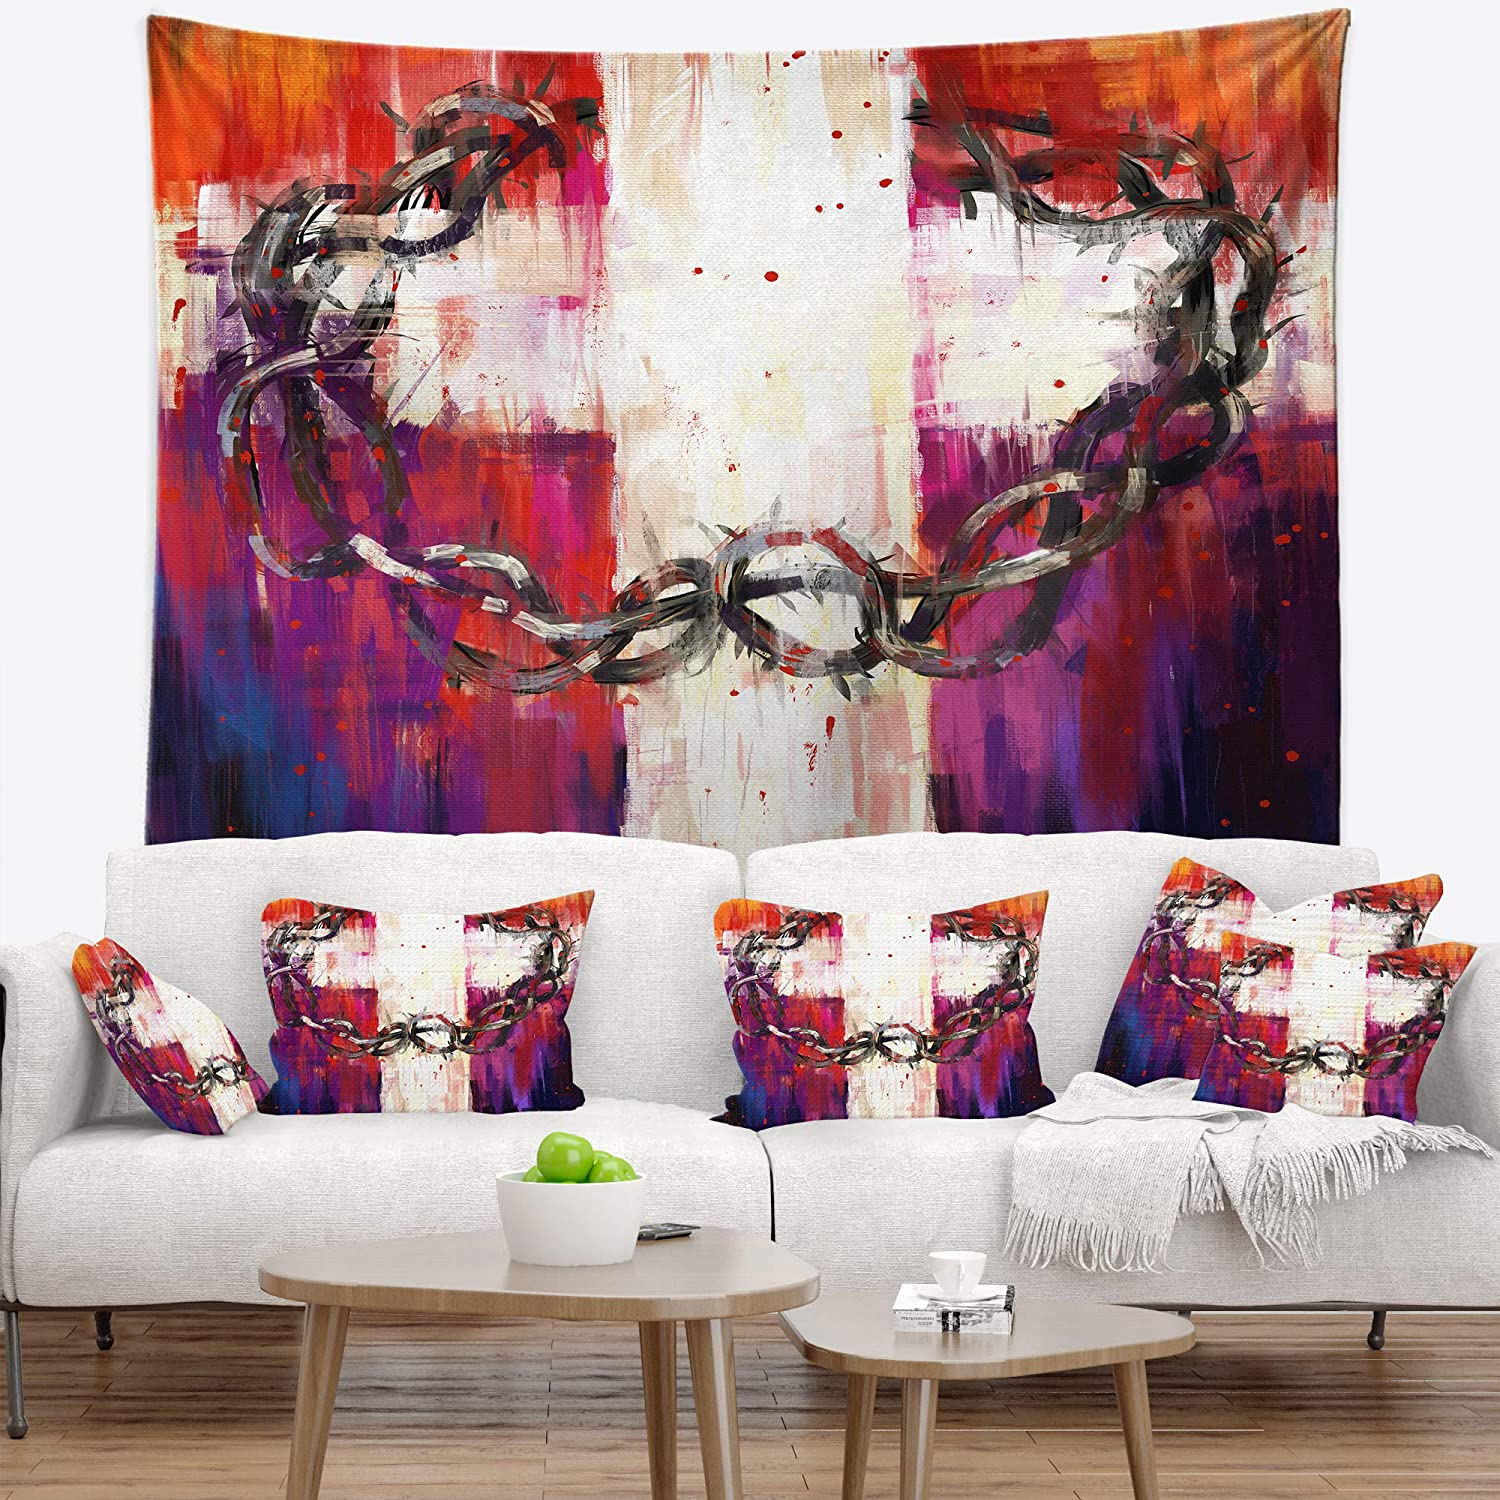 39 x 32 Created On Lightweight Polyester Fabric Designart TAP6340-39-32  Crown of Thorns Abstract Blanket D/écor Art for Home and Office Wall Tapestry Medium